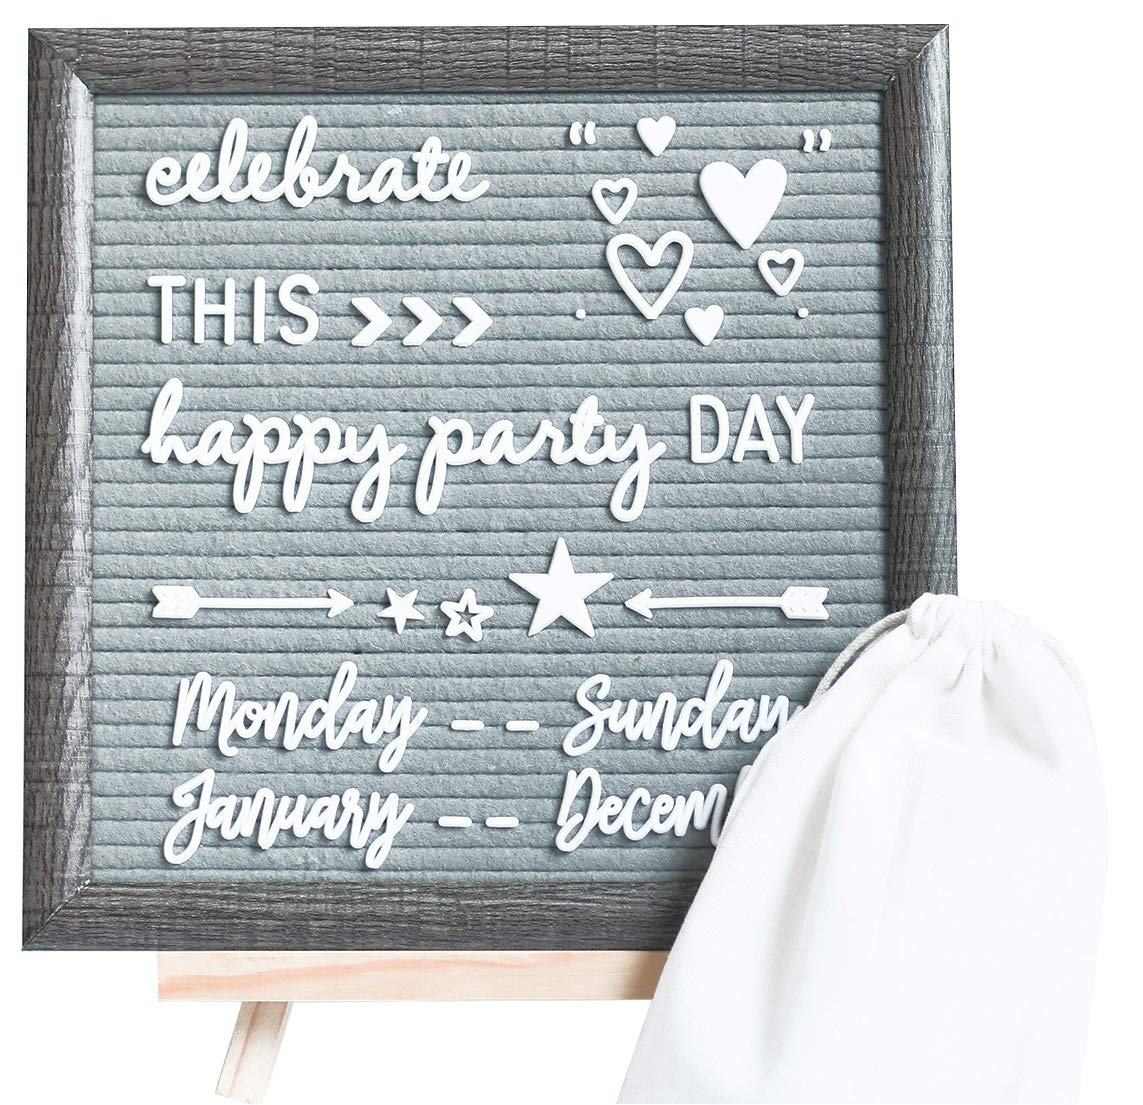 Rustic Framed Felt Letter Board - 324 White Characters and Cursive Word Pack, 10x10 Grey Changeable Letterboard, Wooden Table Stand, One Storage Pouch by Mosa Creations